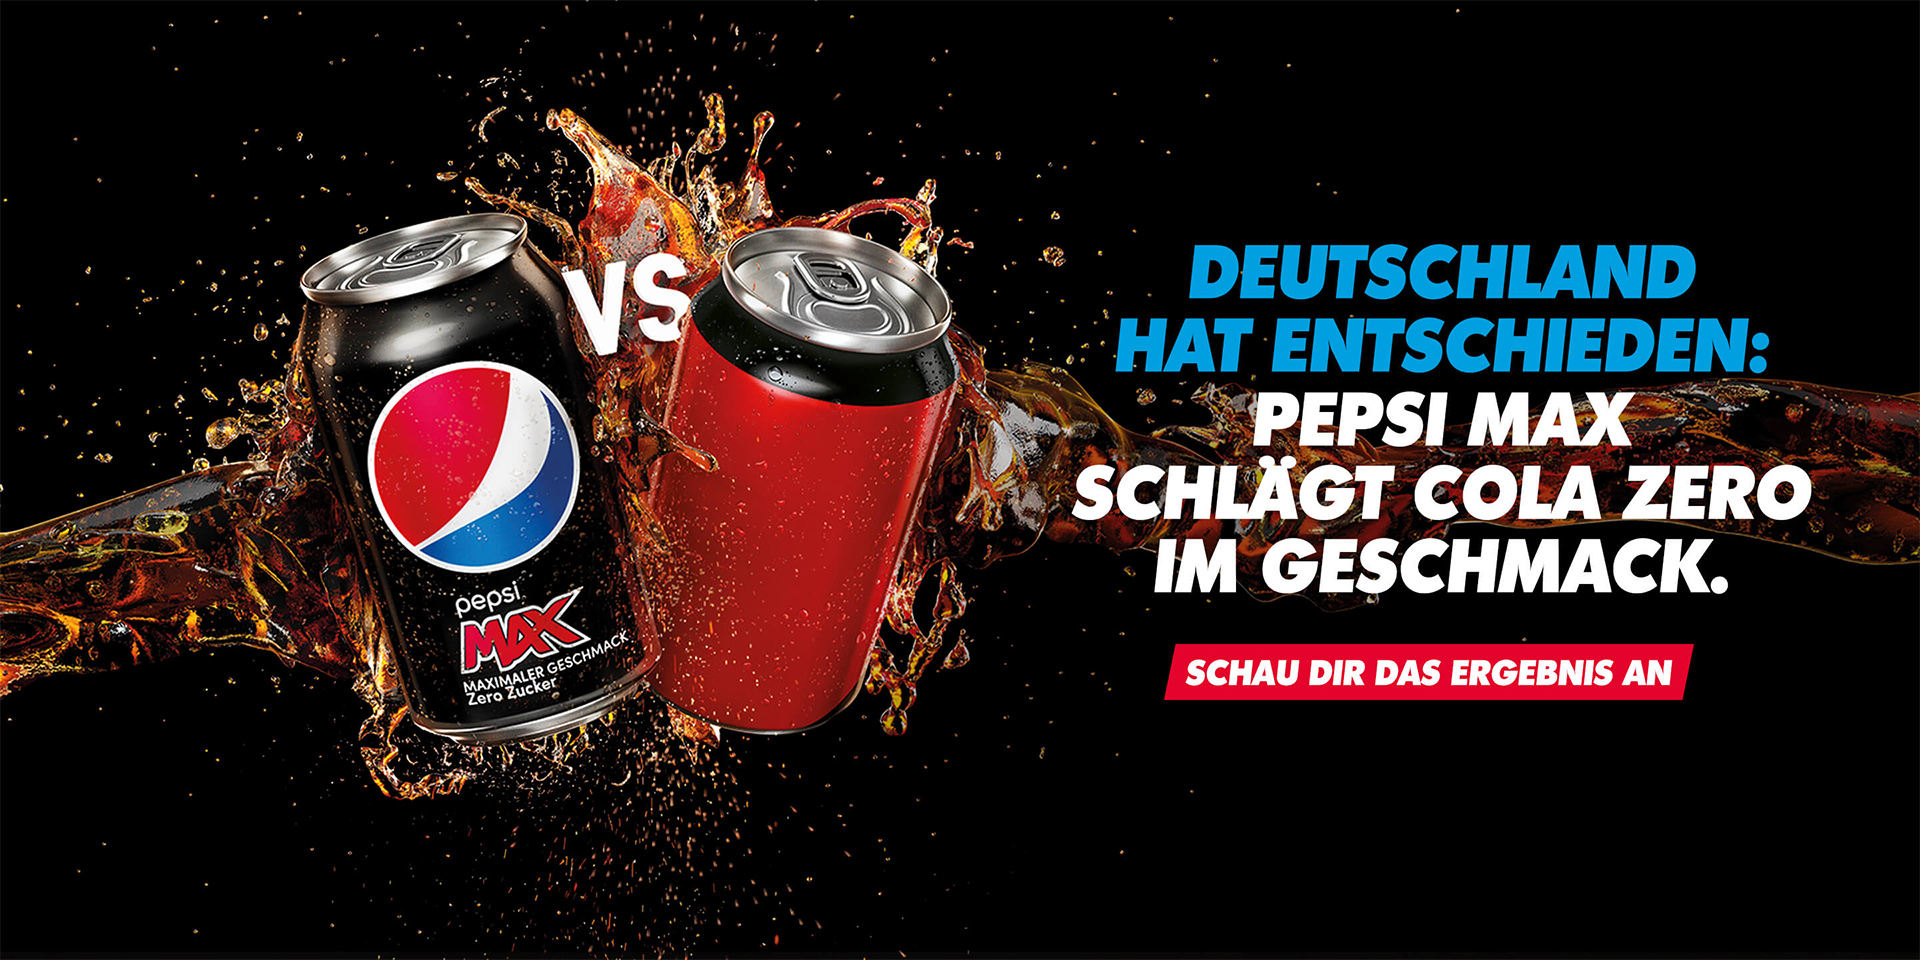 2019.10.14-Pepsi.de-Header-Desktop